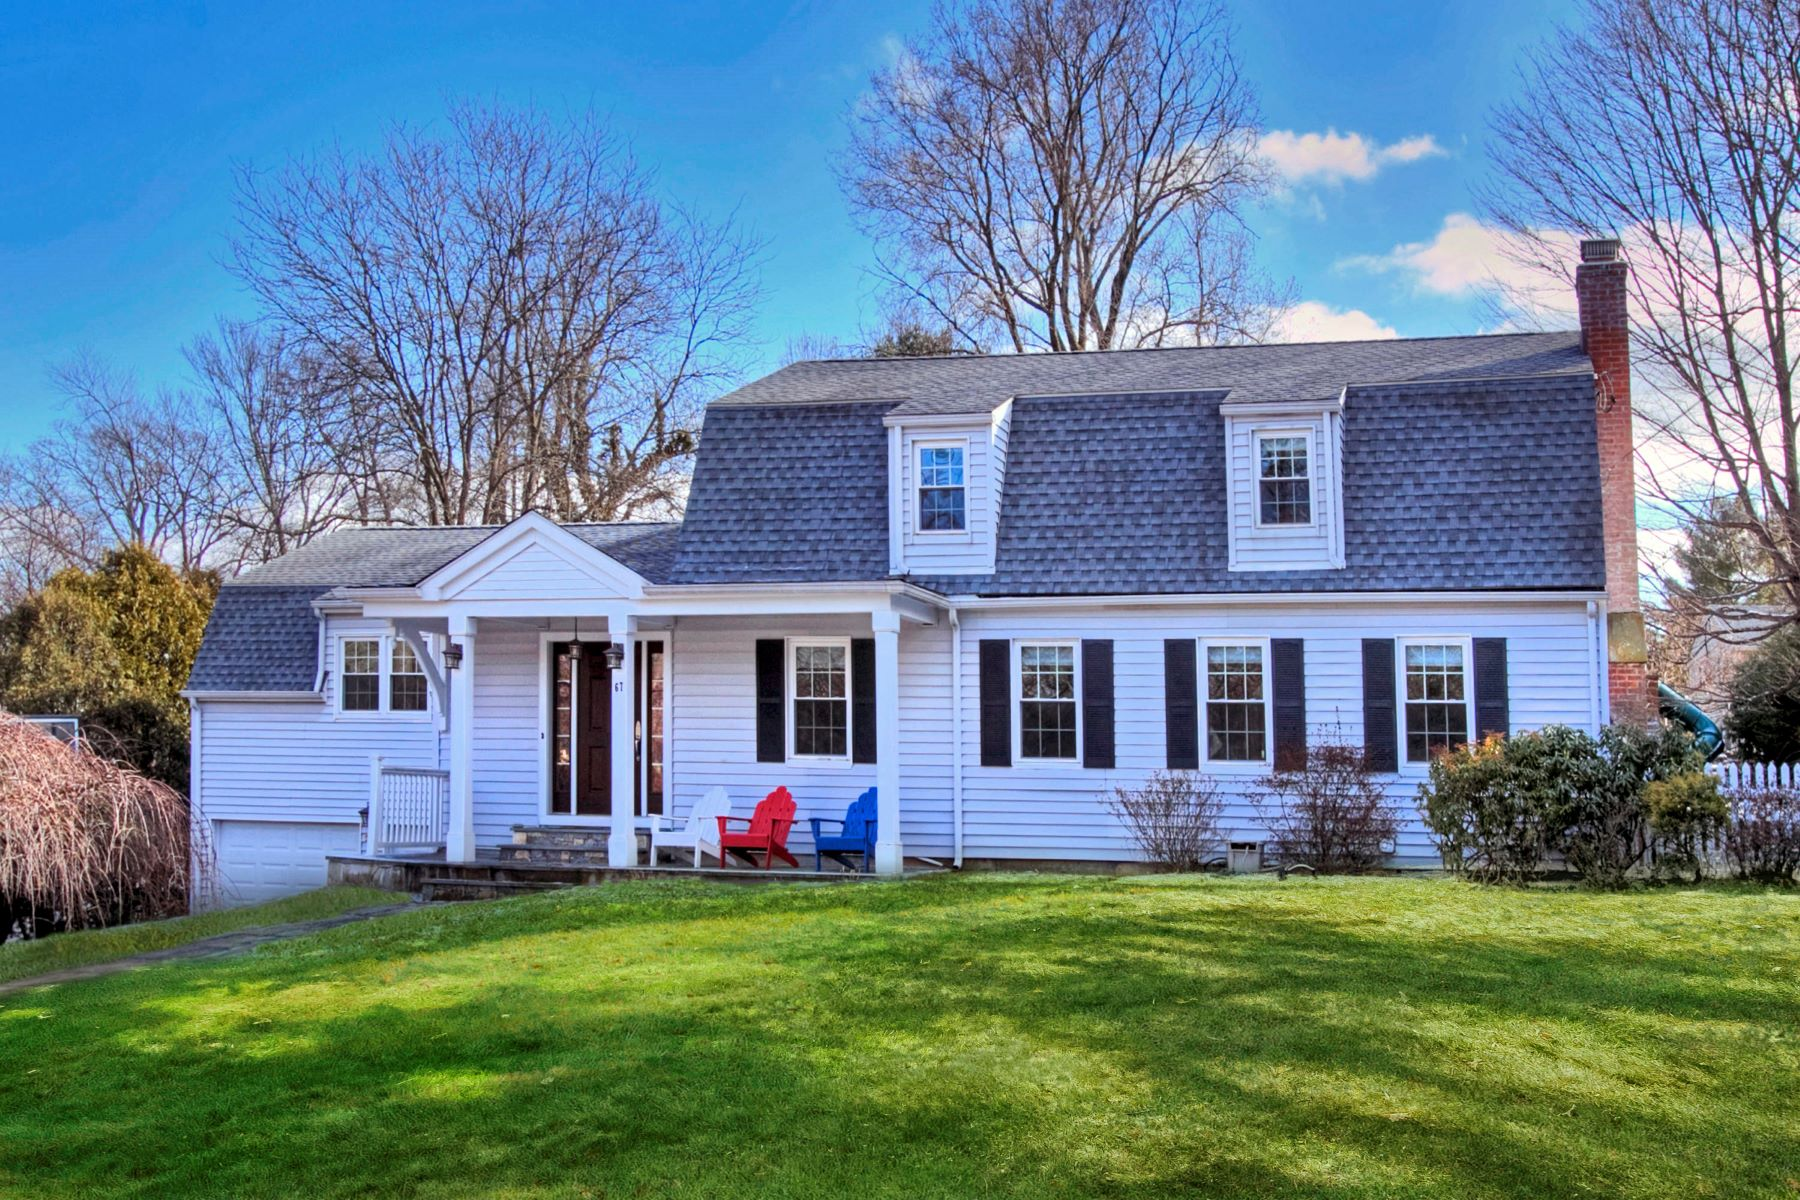 House for Sale at 67 Hawthorne Road 67 Hawthorne Road New Canaan, Connecticut 06840 United States